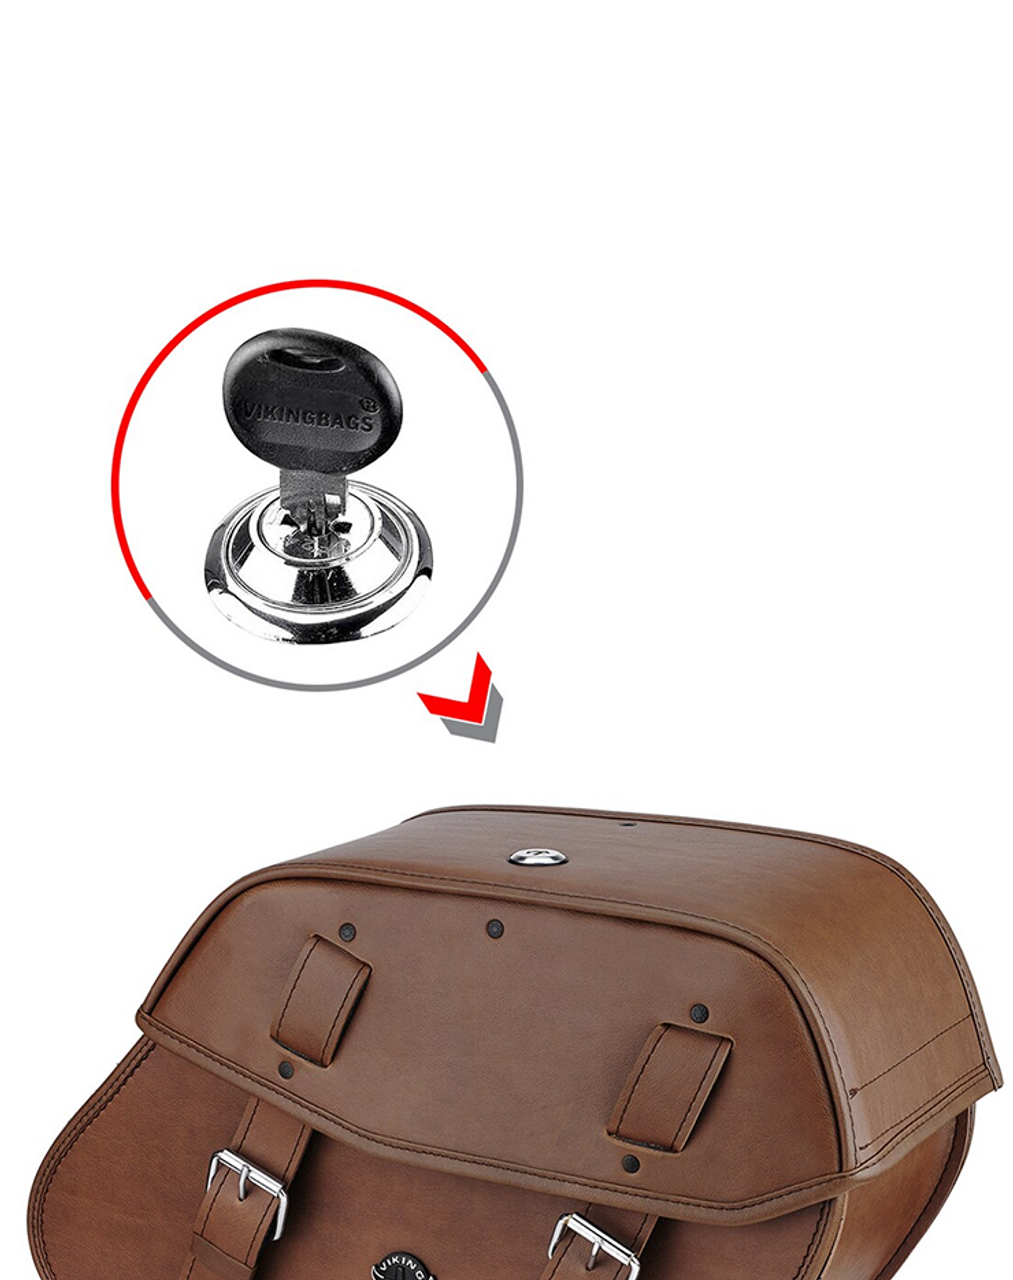 Viking Odin Brown Large Motorcycle Saddlebags For Harley Softail Low Rider Key Lockable View